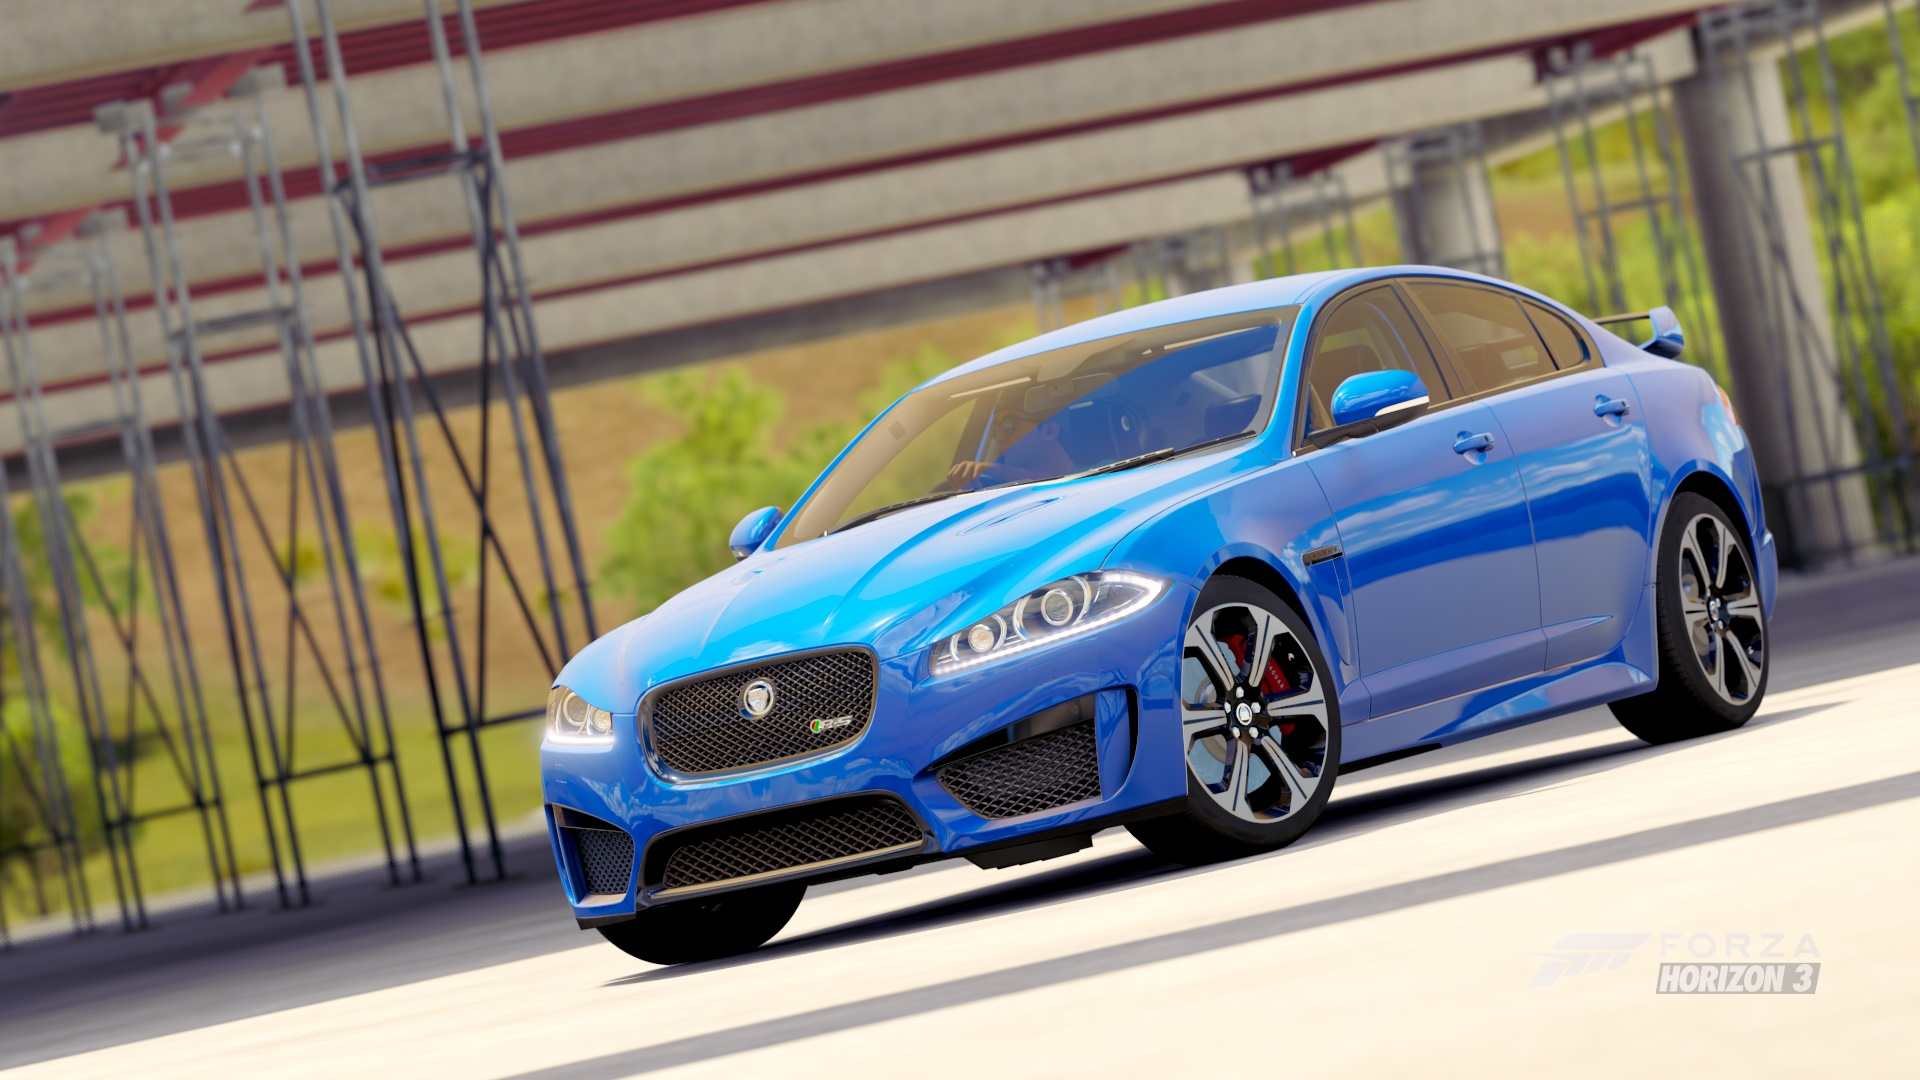 Forza horizon 3 cars 2015 jaguar xfr s photo by korniis95 biocorpaavc Gallery